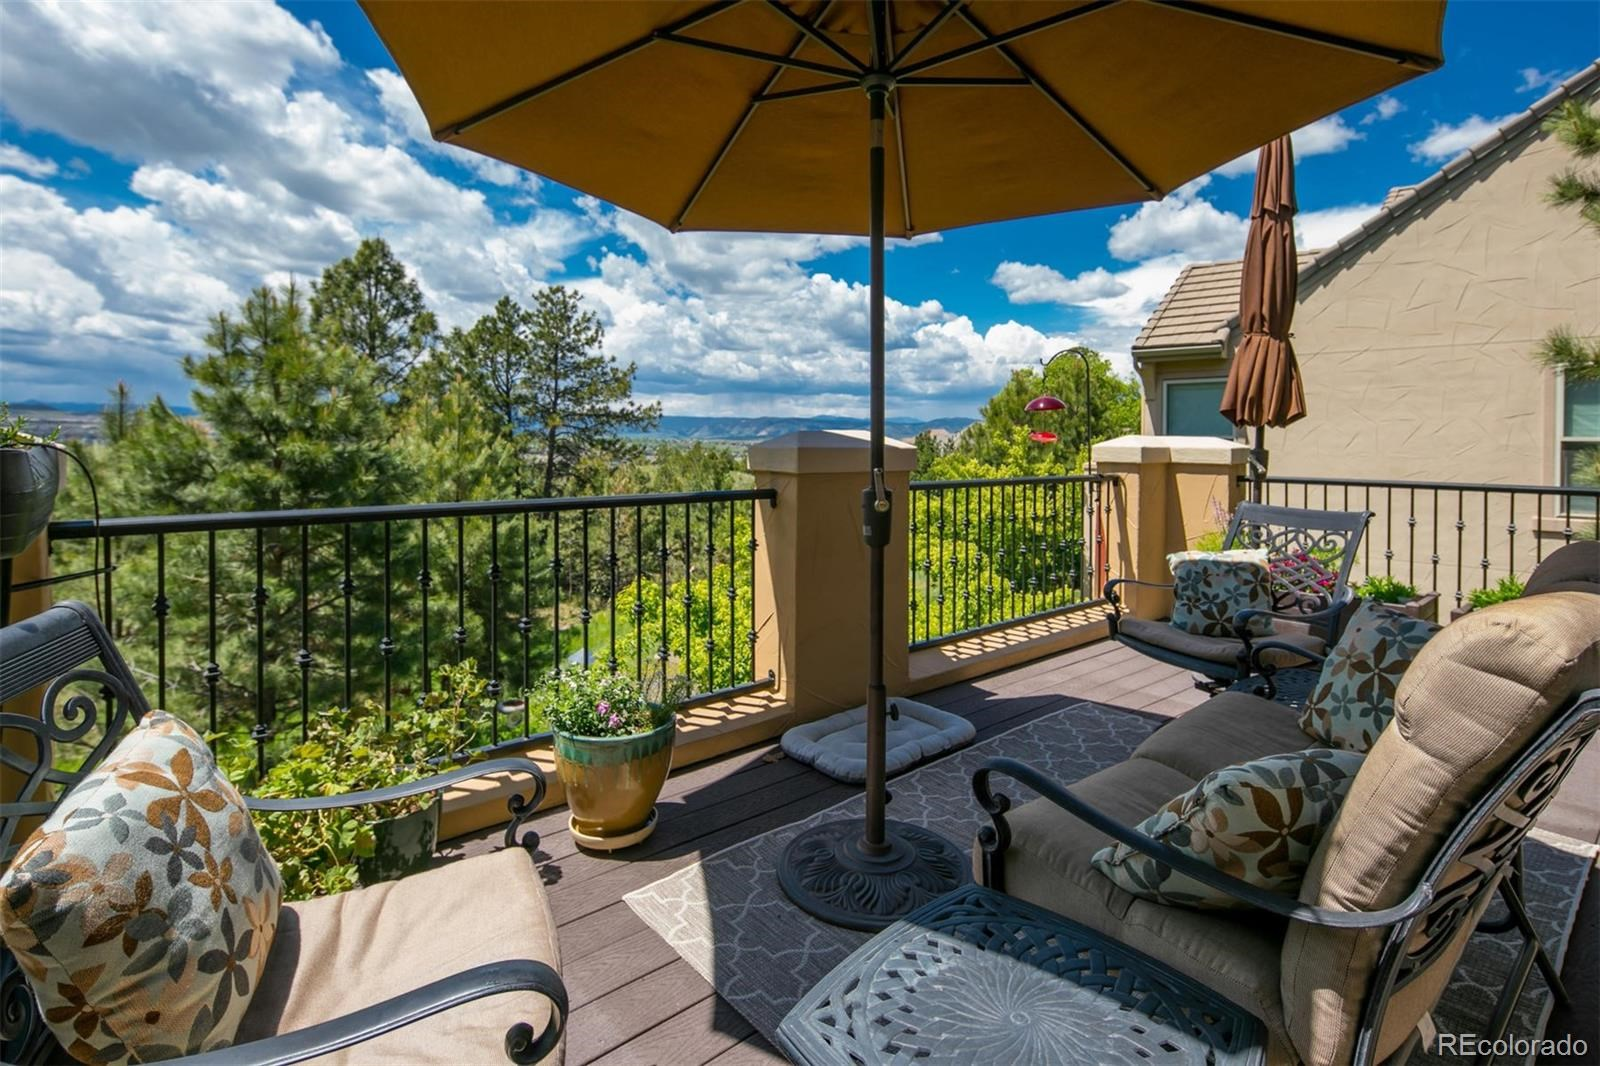 MLS# 5435747 - 25 - 5085 Hidden Pond Place, Castle Rock, CO 80108